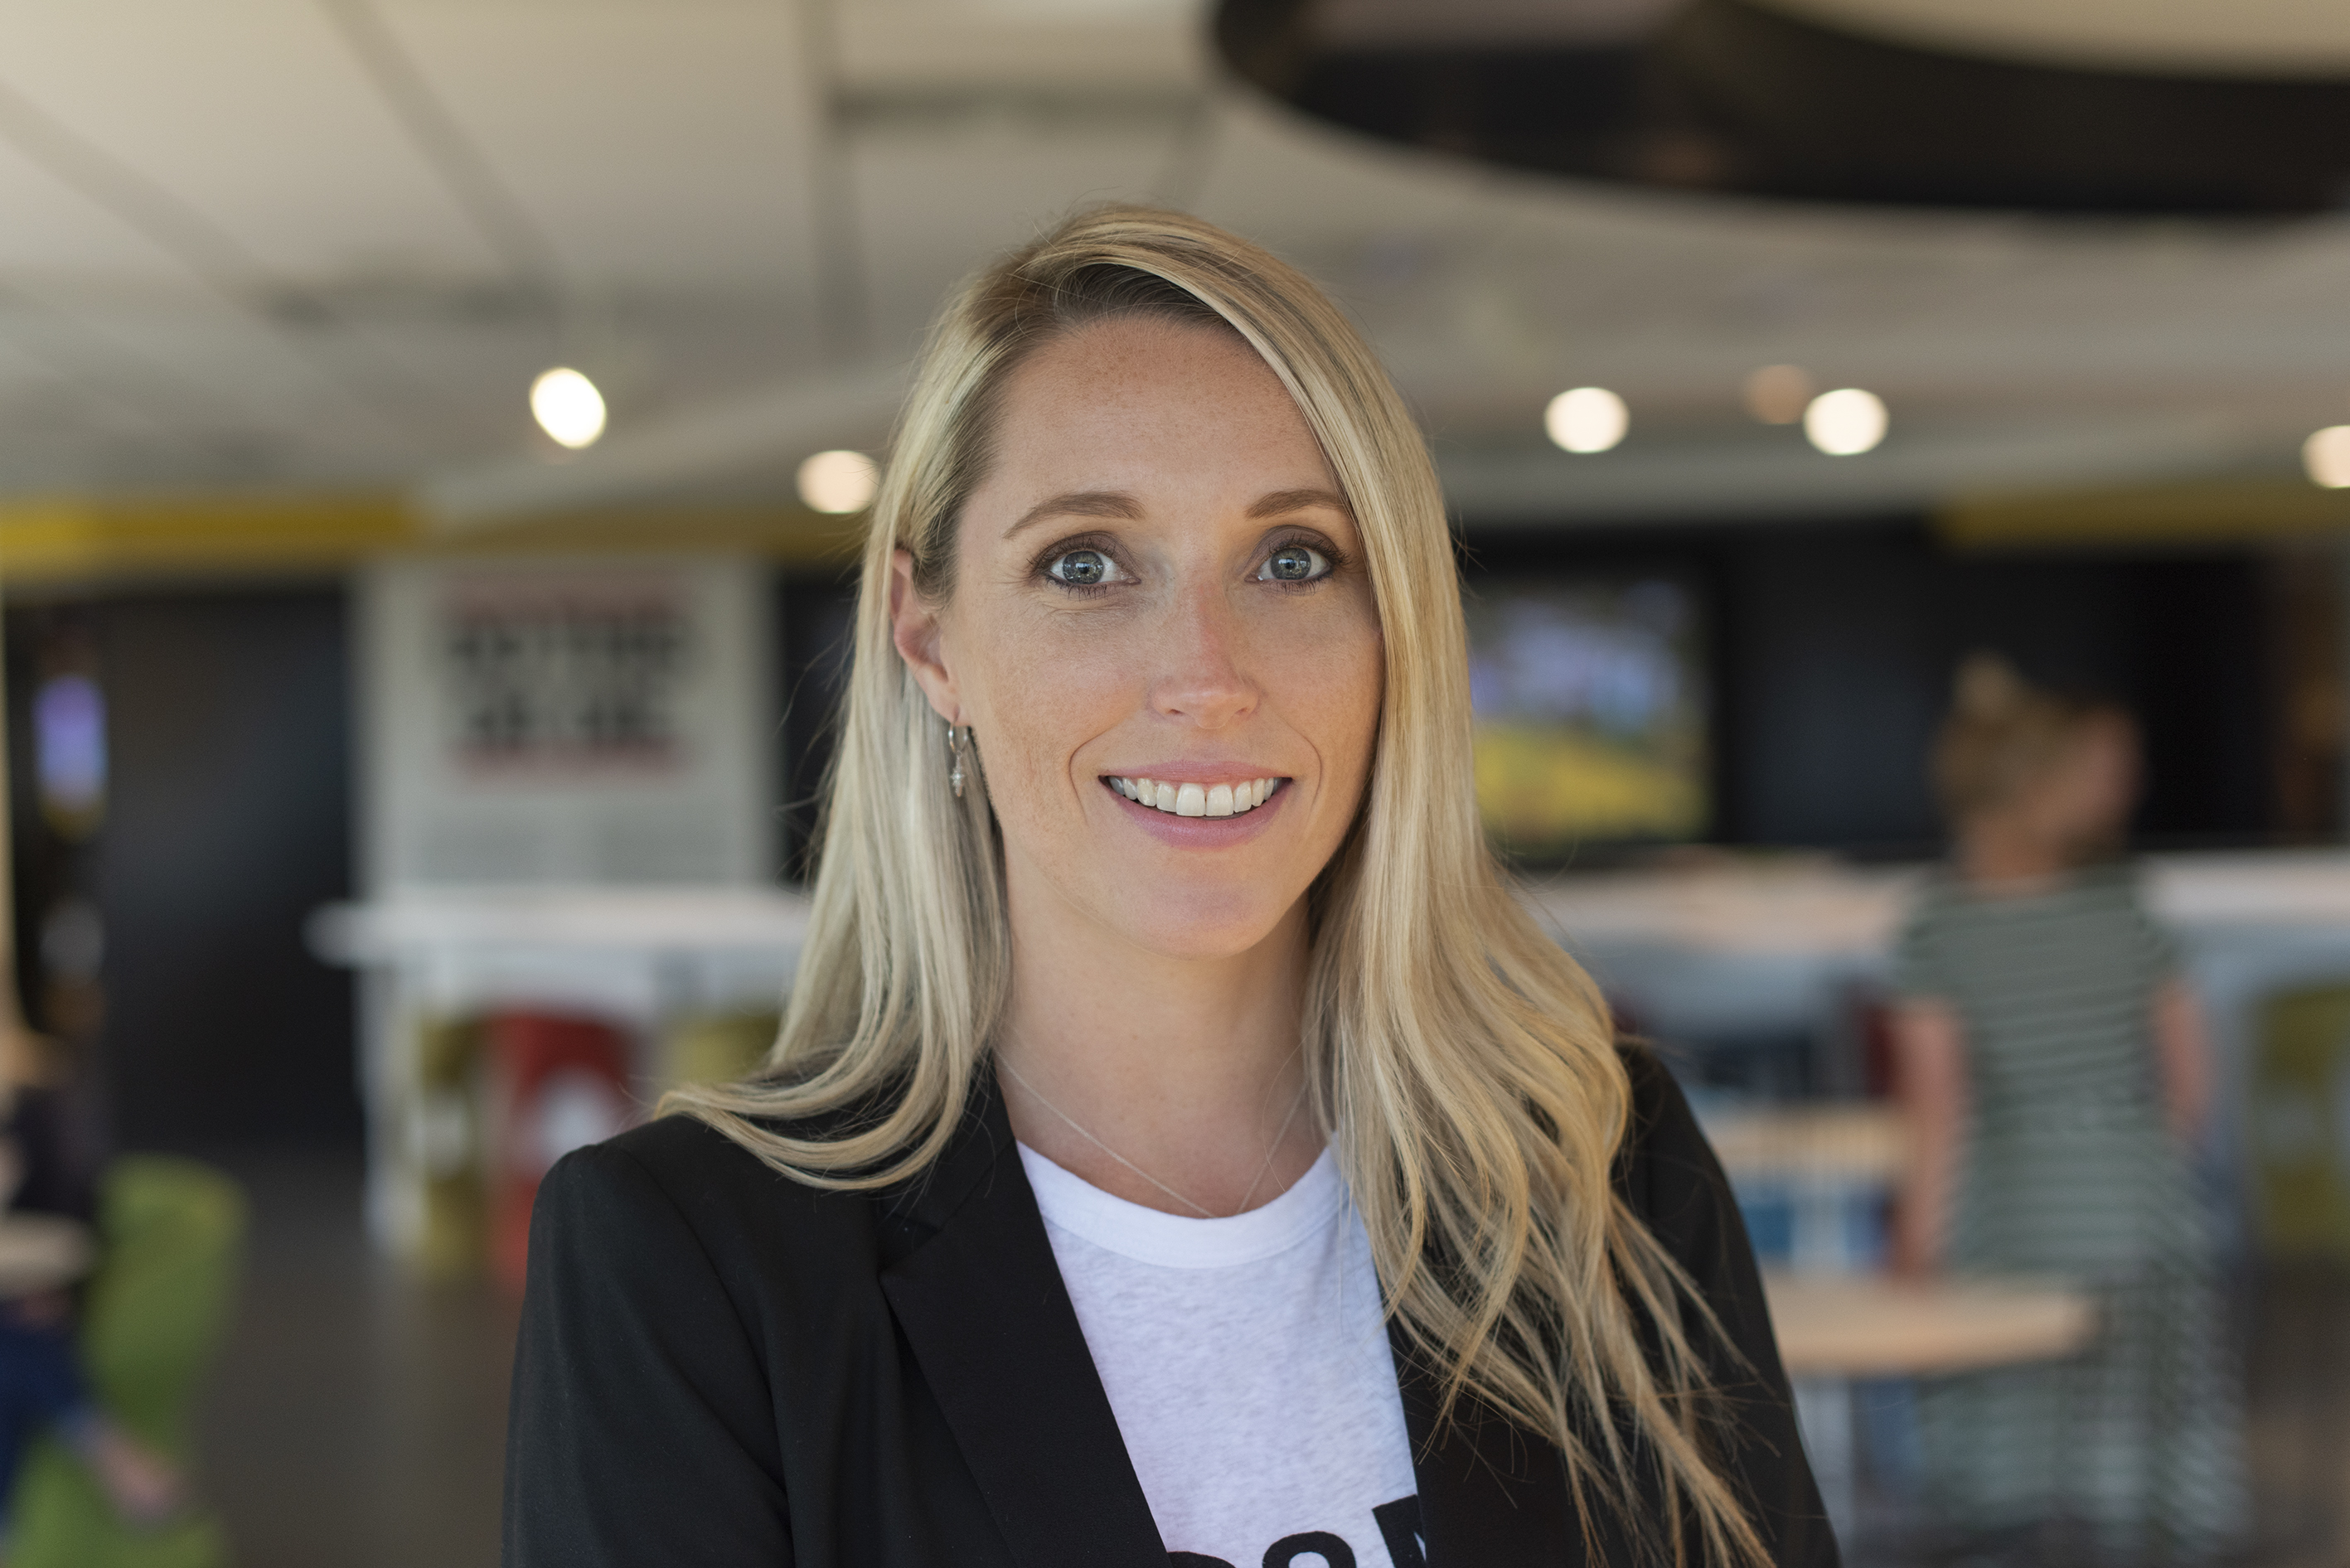 Mango's Zoe Virtue named as global judge for Effective Social Strategy at WARC Awards 2020